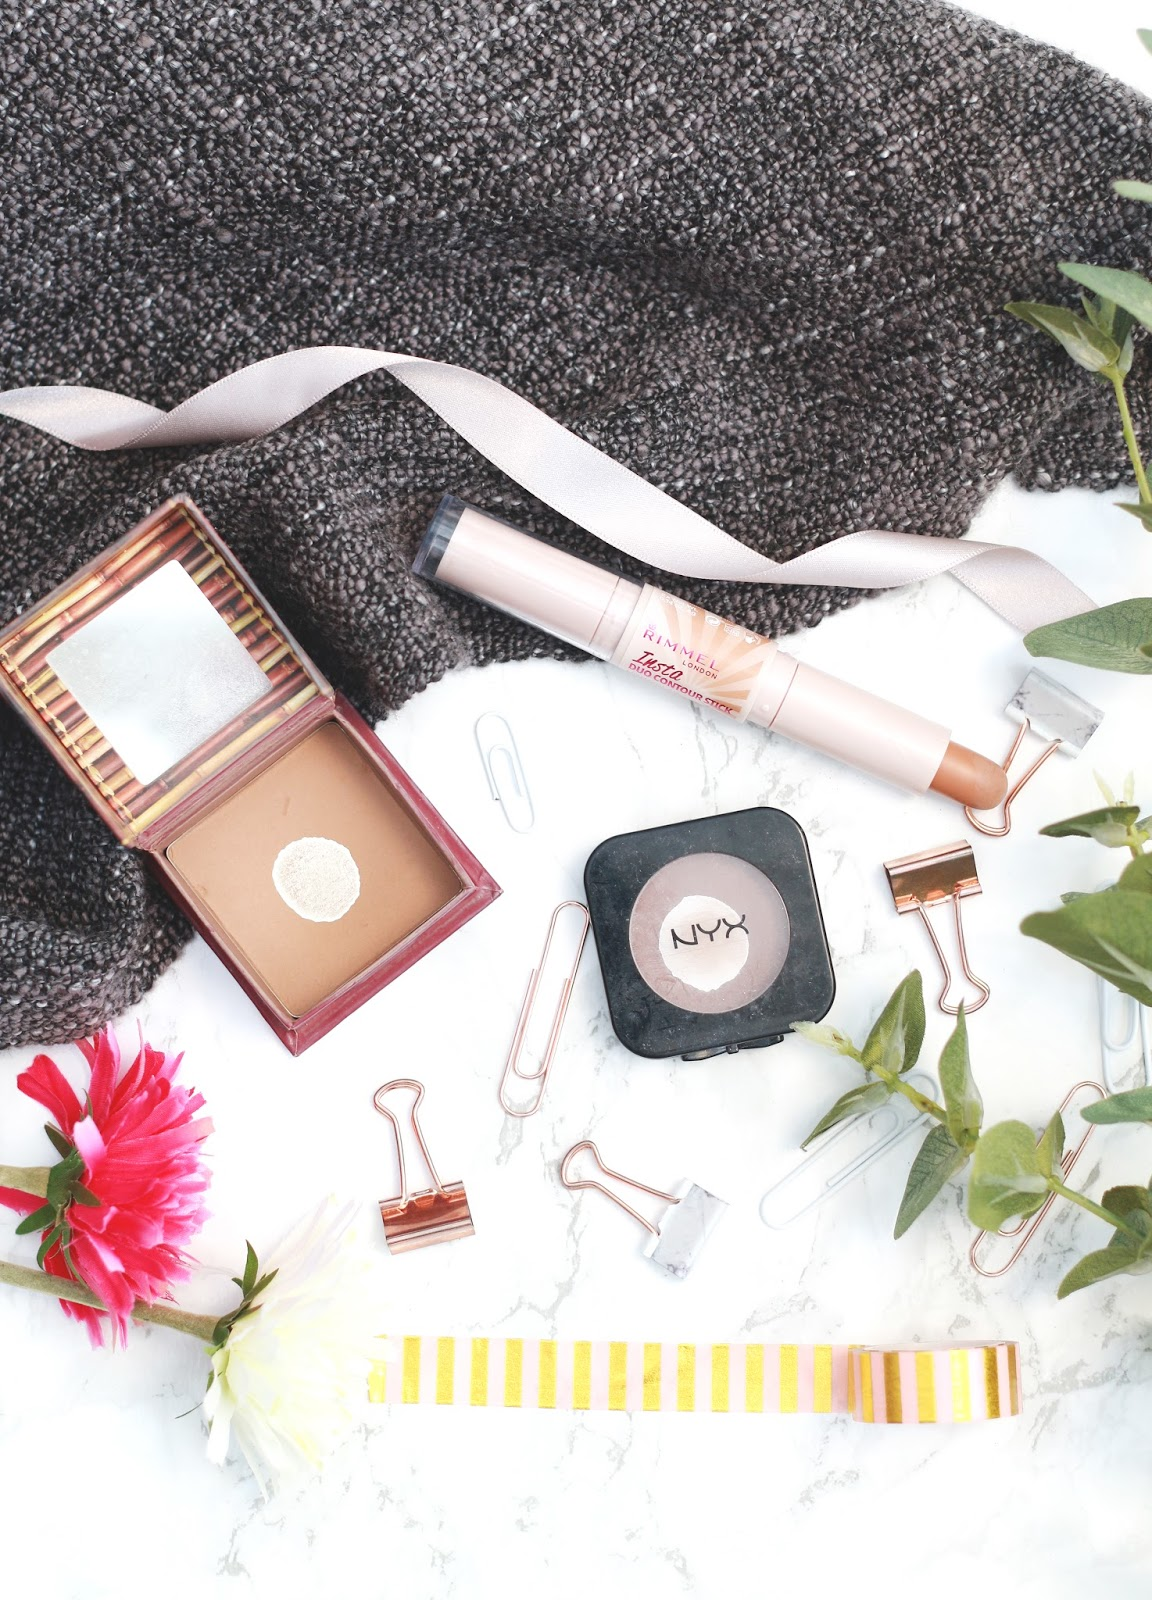 contour, bronzing, hoola bronzer, insta contour stick, nyx taupe blush, benefit, nyx, rimmel, pale skin, contour, highlight, makeup, beauty, beauty blogger, forever september, fashion, lifestyle, flatlay, blogger, instagram blogger, marble background,